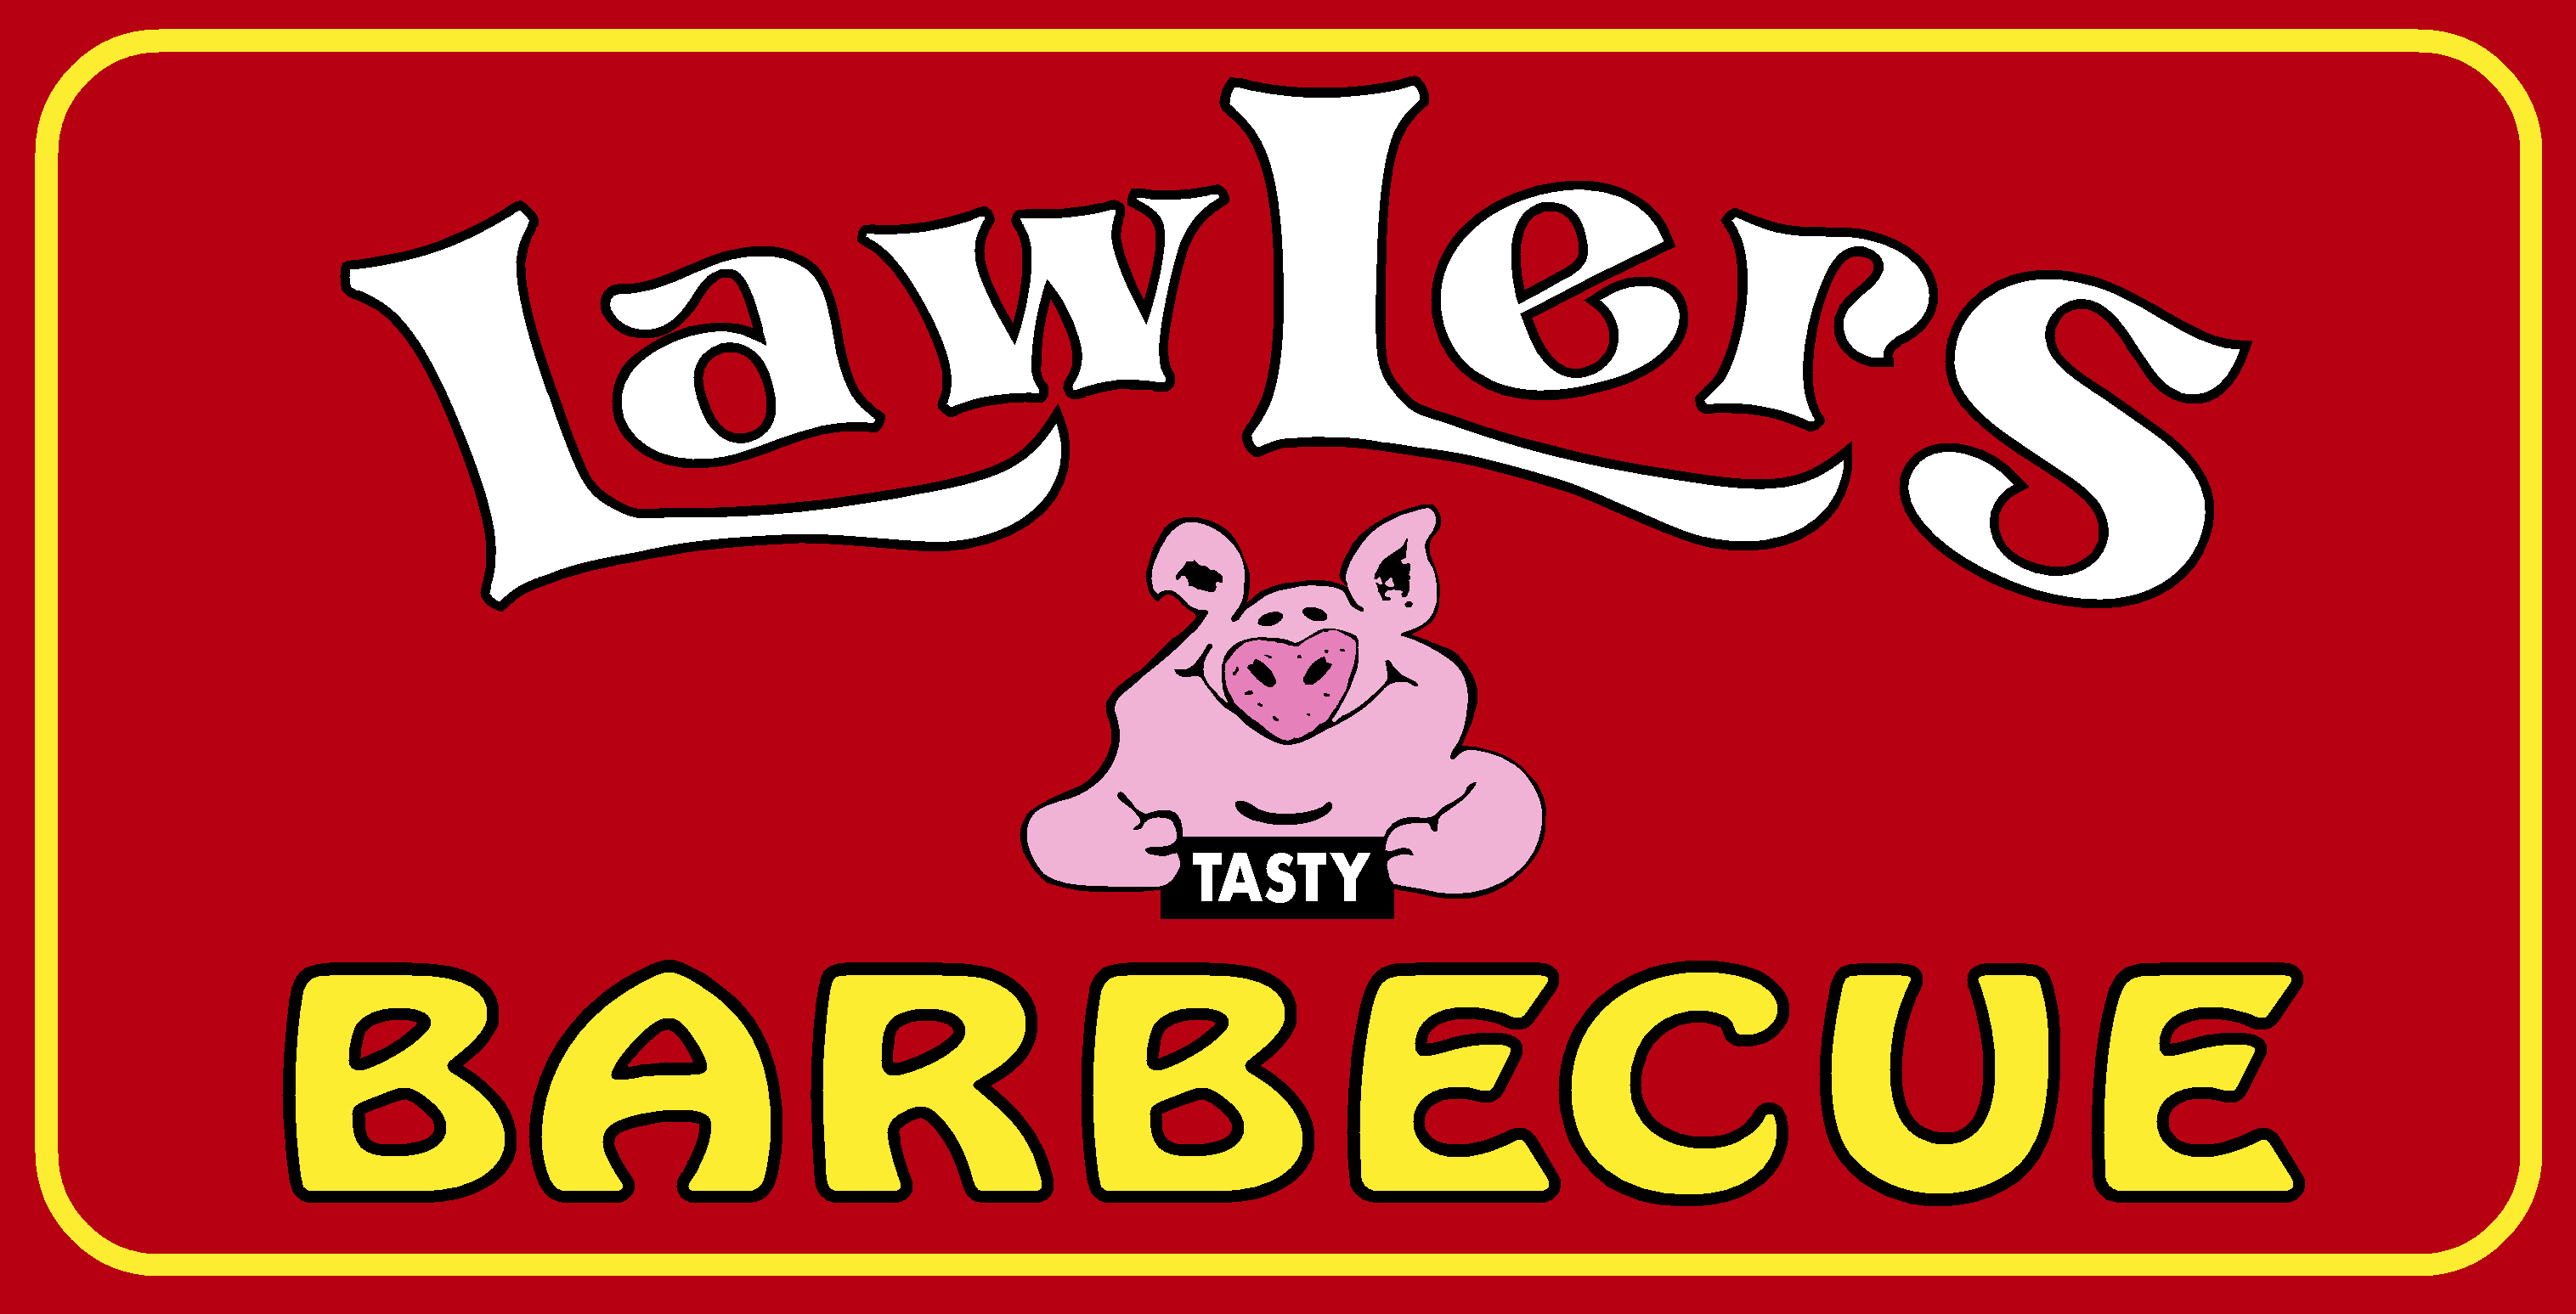 LawLers Barbecue: Express 6